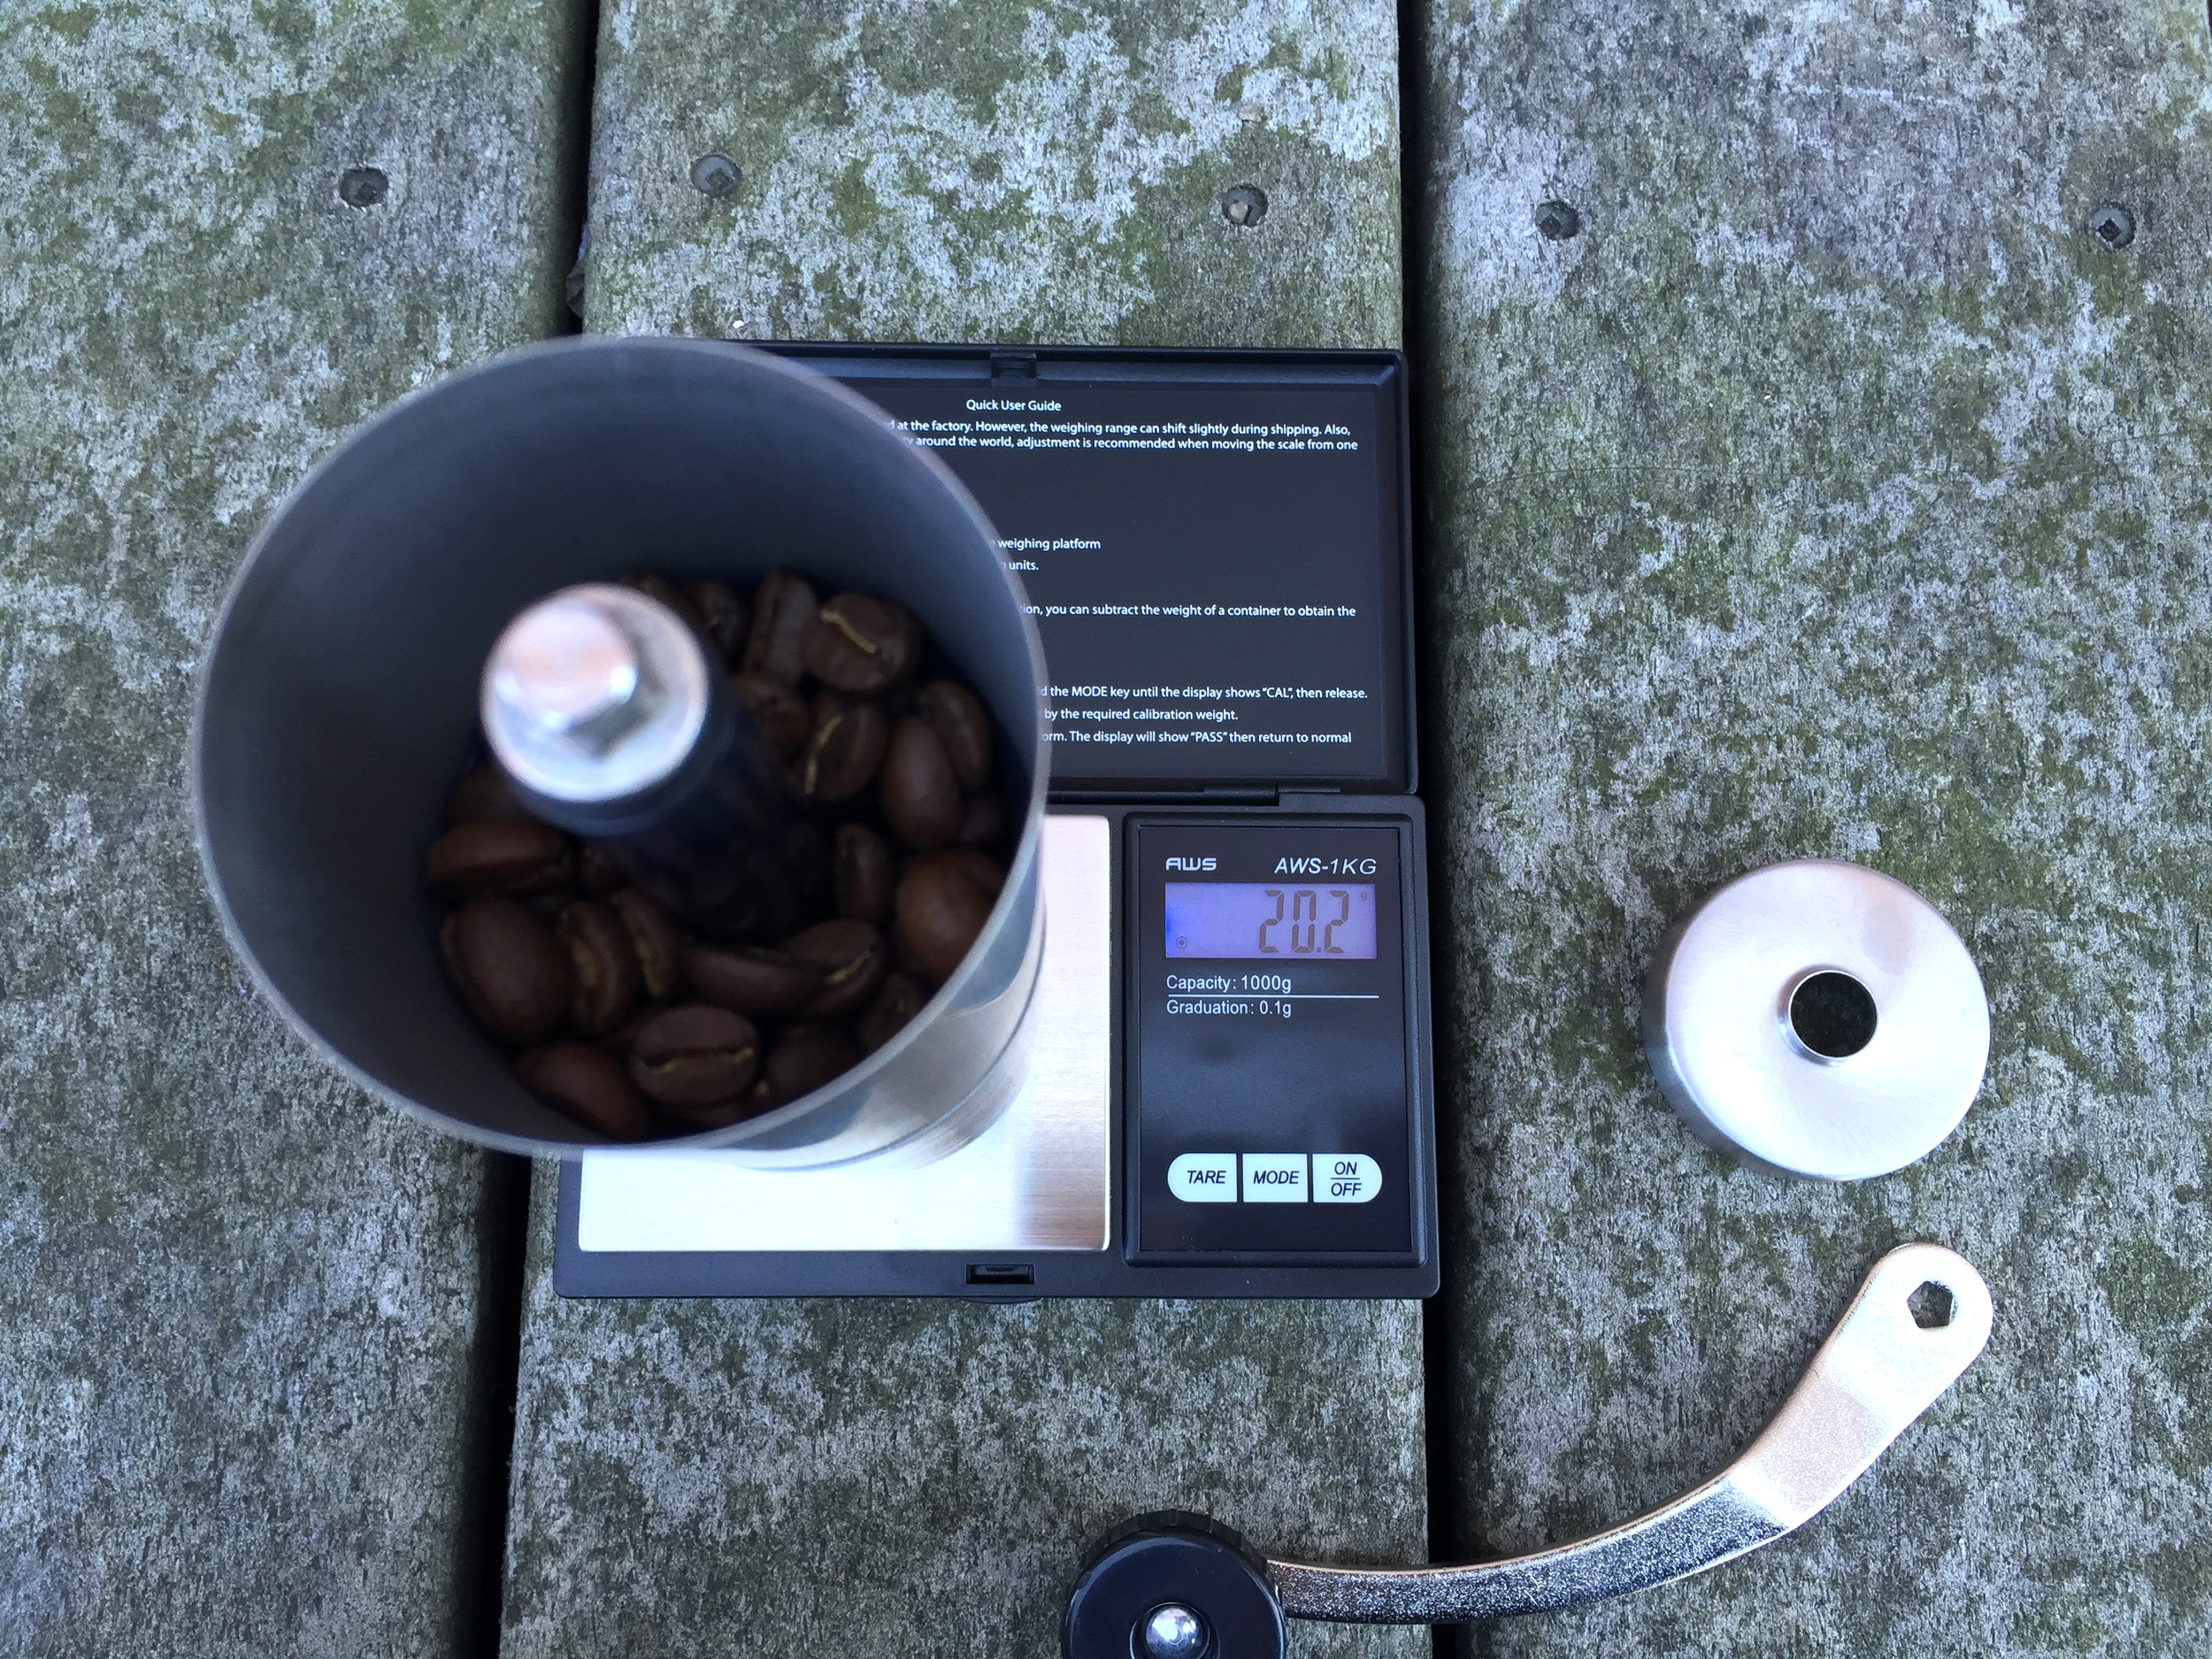 Measure out your beans (20g)